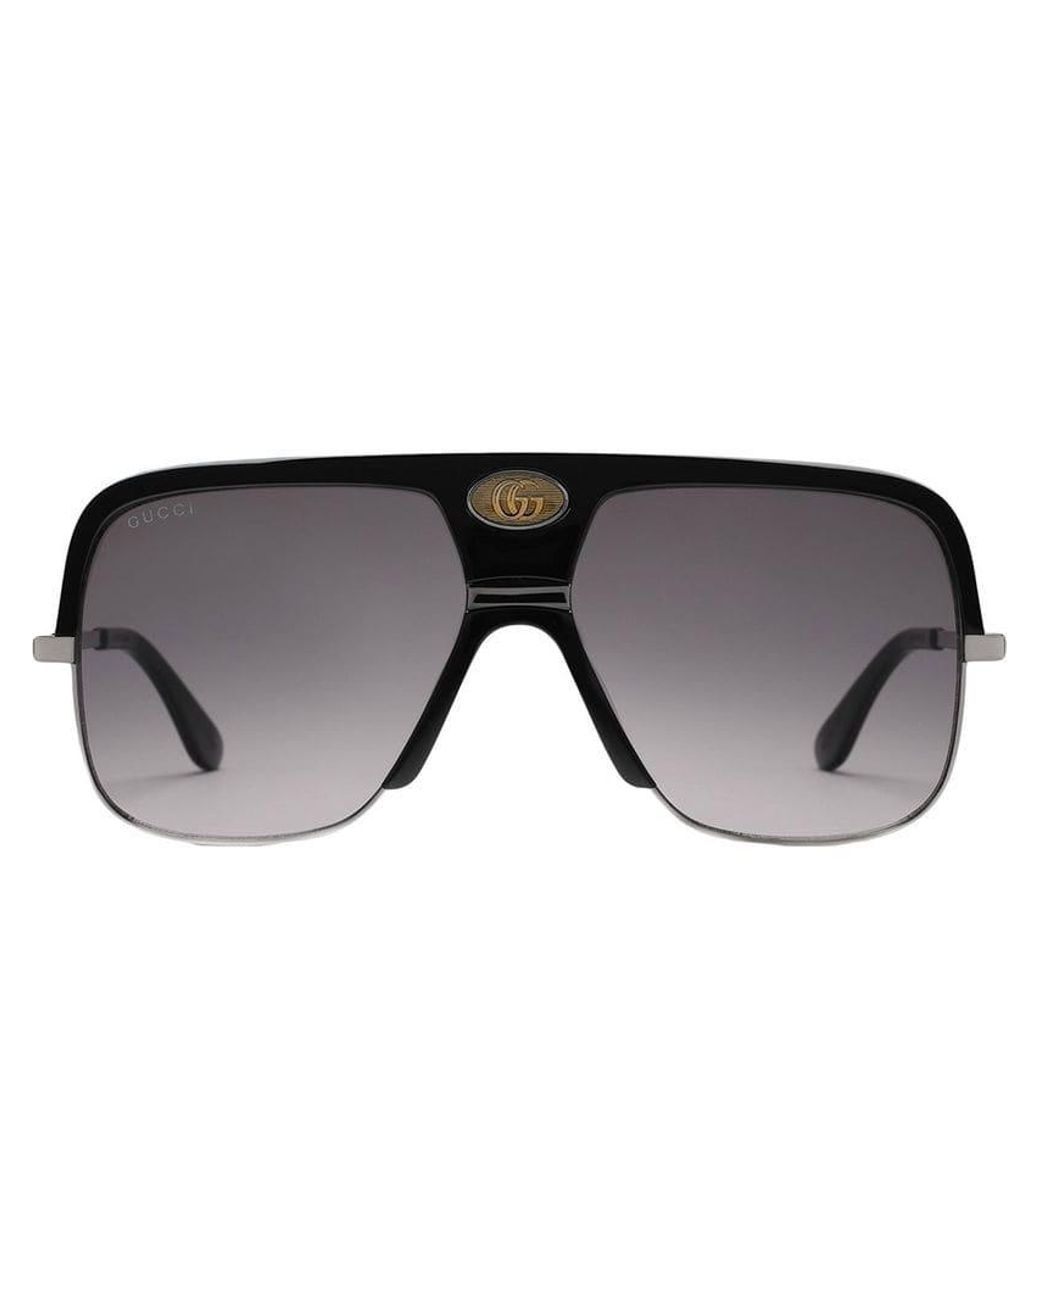 96093defb Gucci Navigator Sunglasses With Double G in Black for Men - Lyst